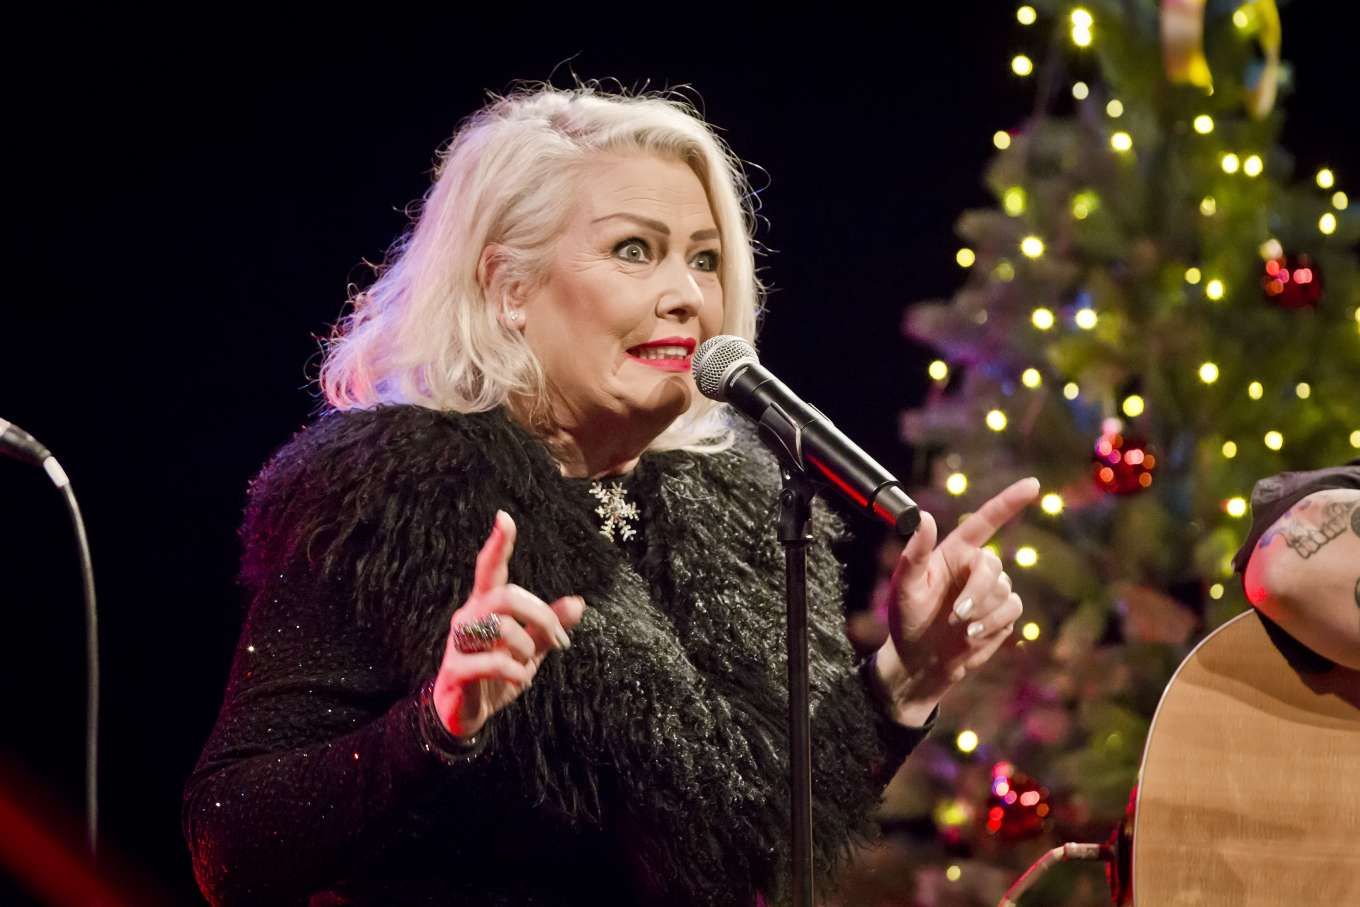 Kim Wilde 2019 : Kim Wilde – Performs Live During a Concert-07